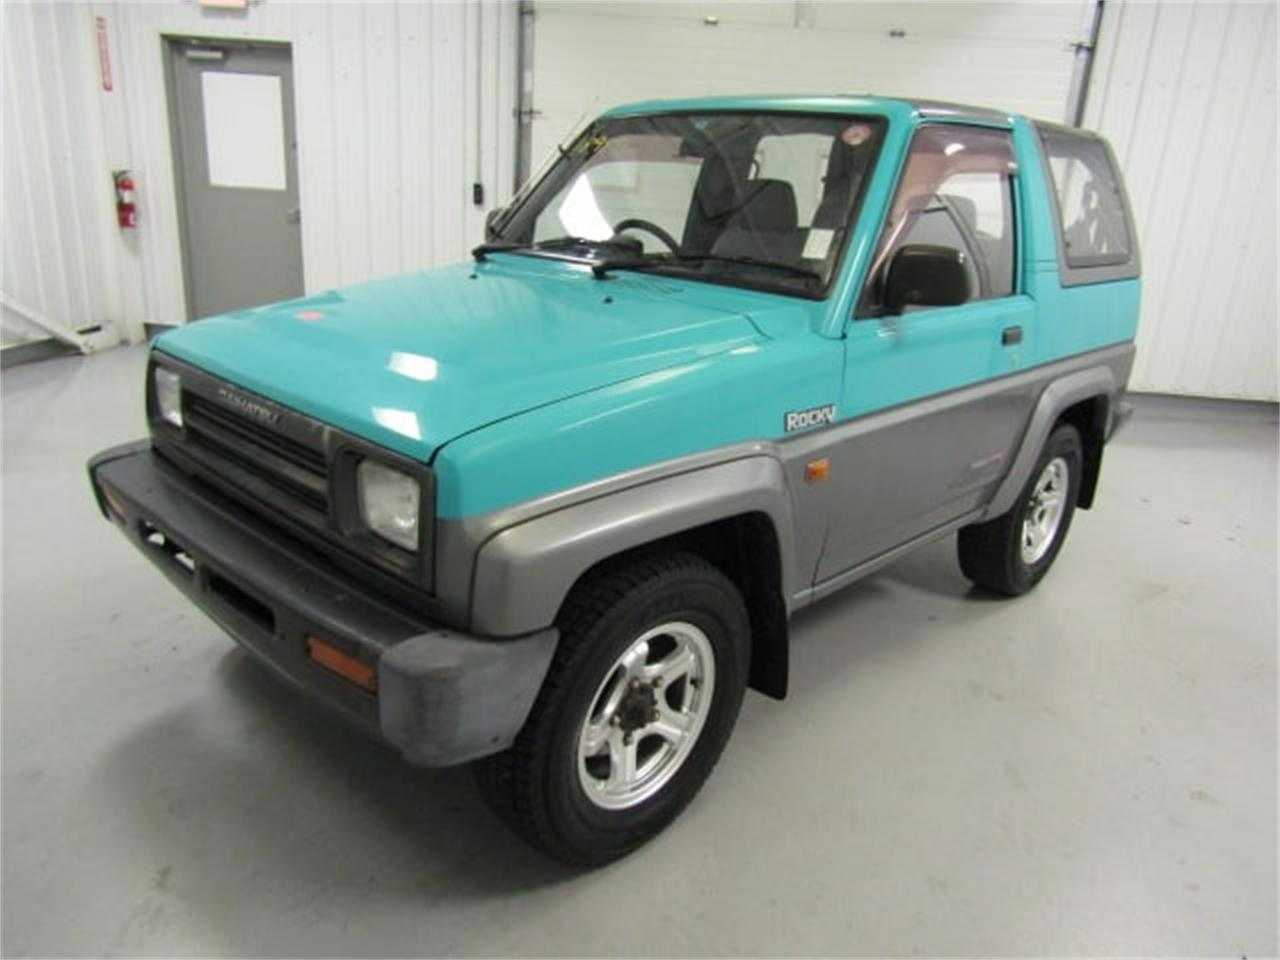 Large Picture of 1991 Rocky located in Christiansburg Virginia - $8,989.00 Offered by Duncan Imports & Classic Cars - Q4MR